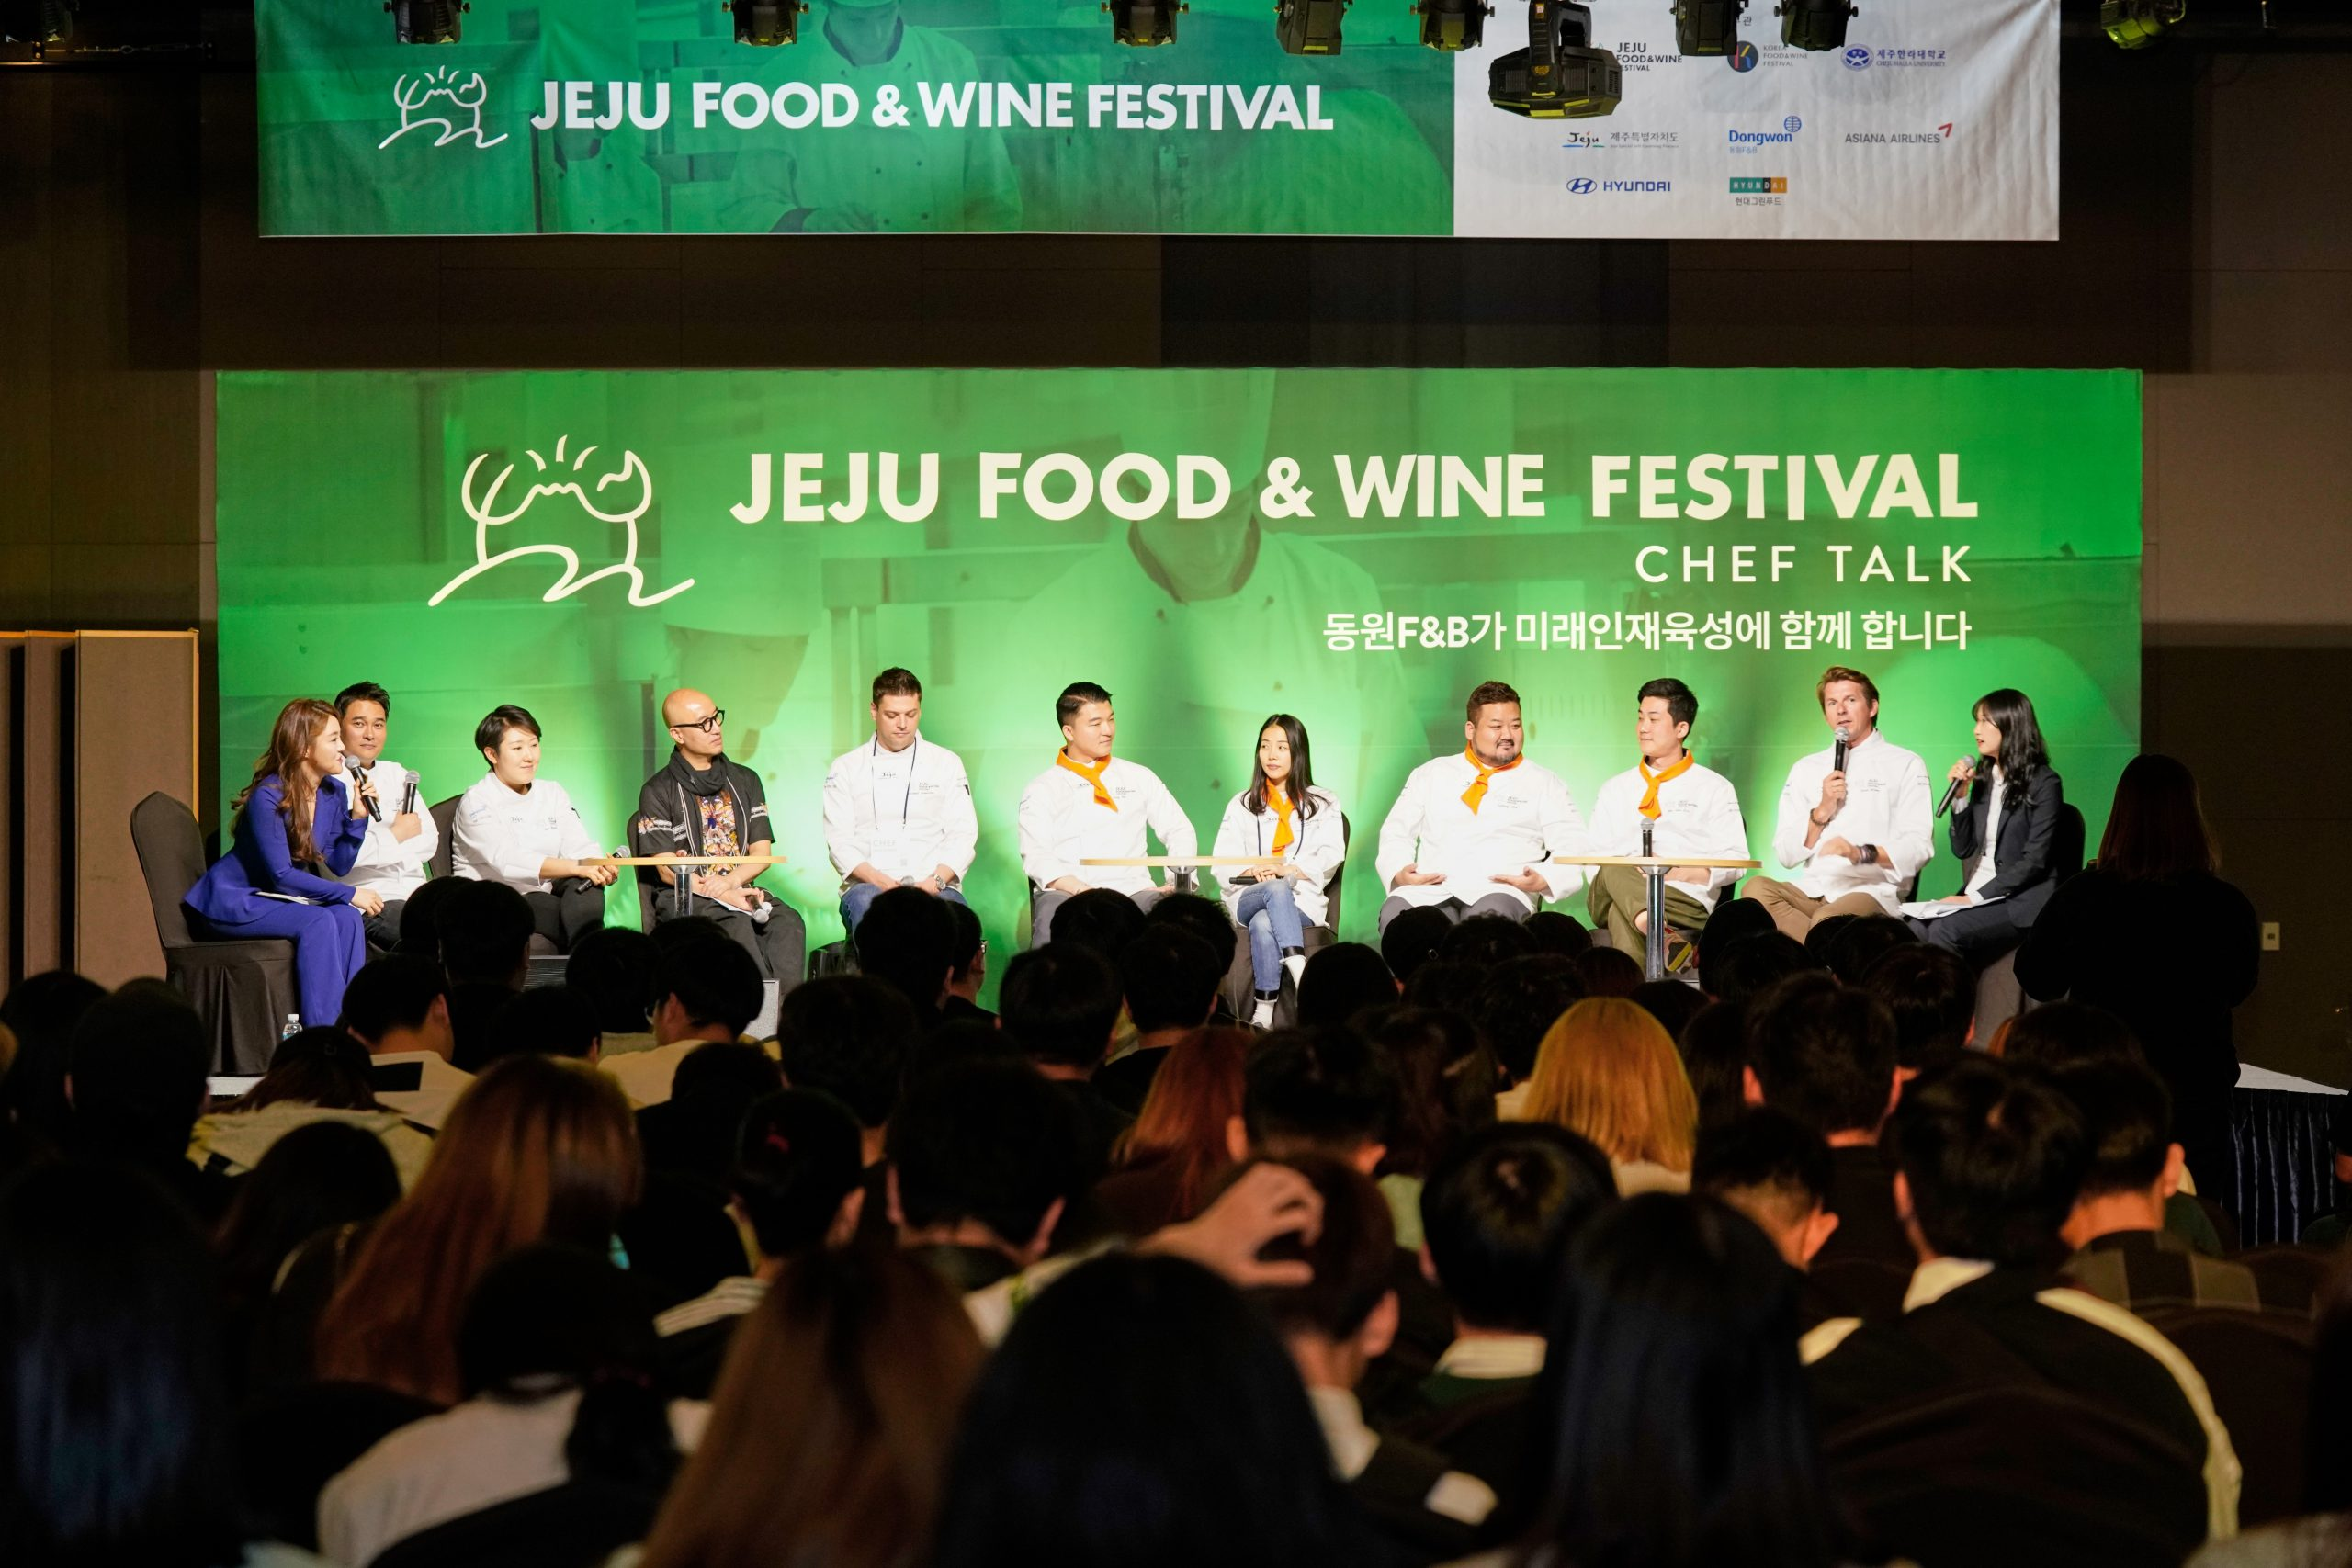 Talk concert of famous chefs for students interested in F&B